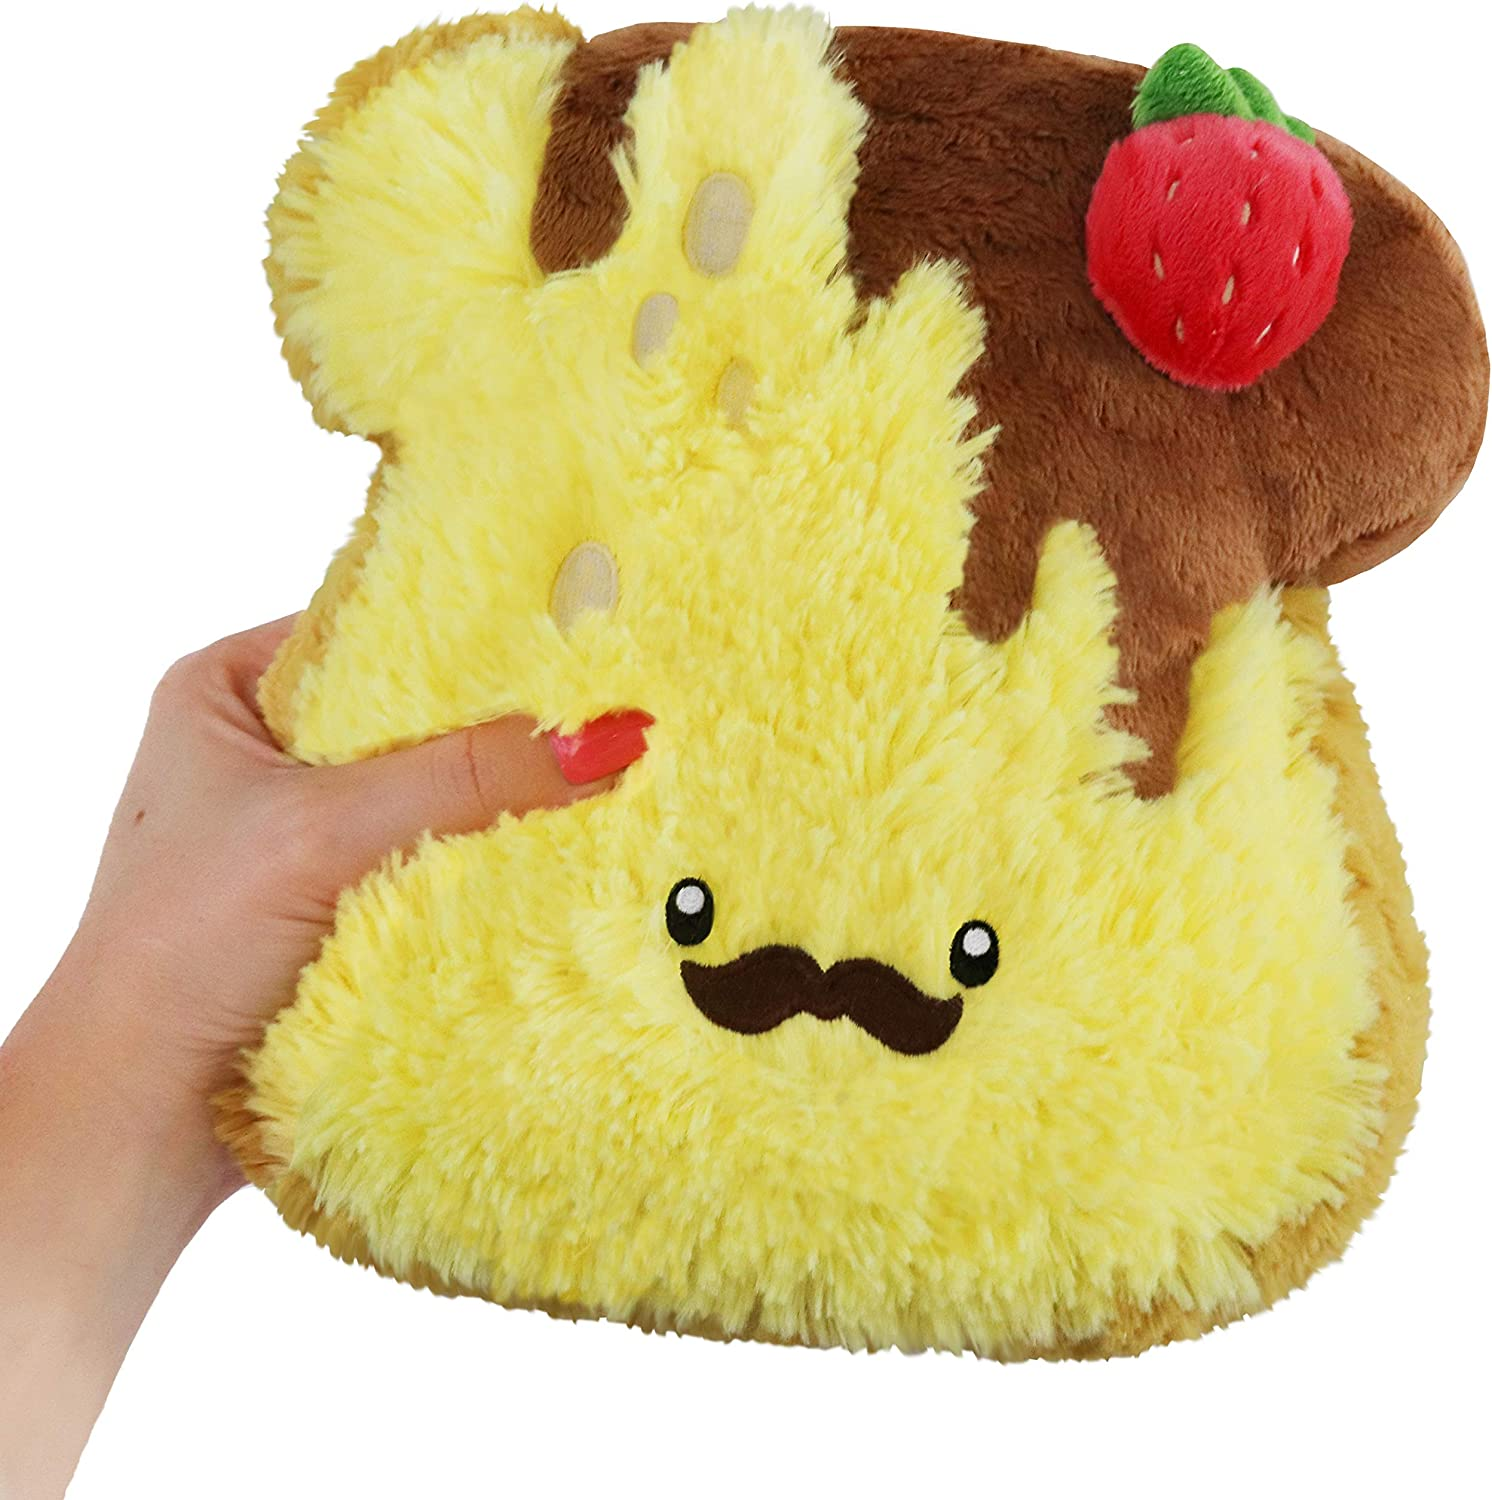 Squishable / Mini Comfort Food French Toast - 7""